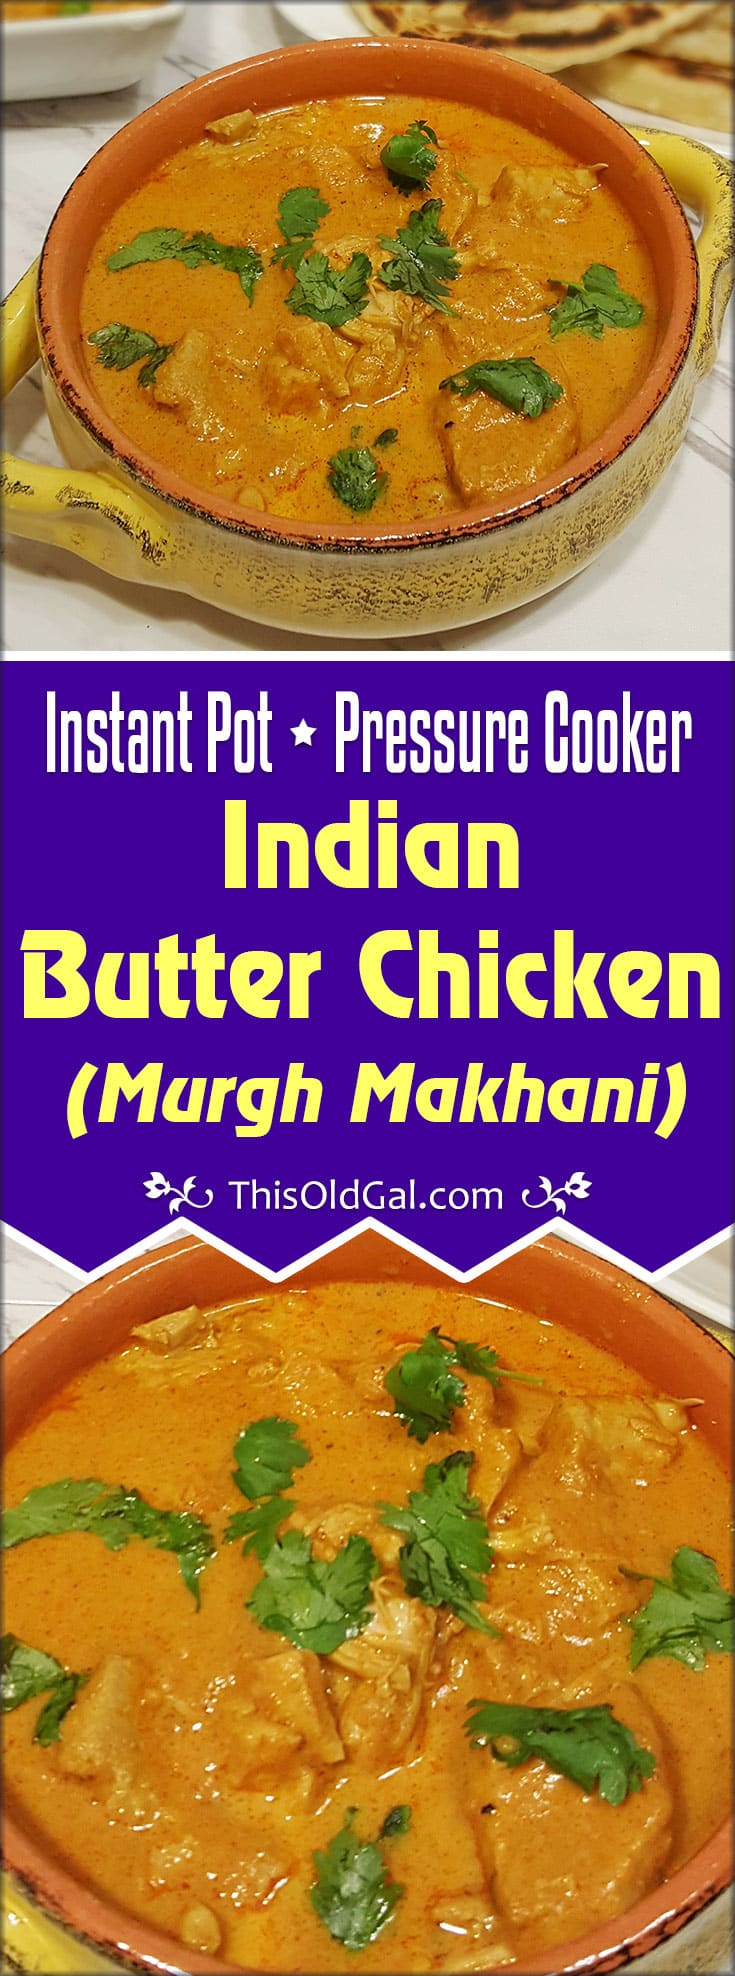 Pressure Cooker Indian Butter Chicken {Murgh Makhani} with Naan